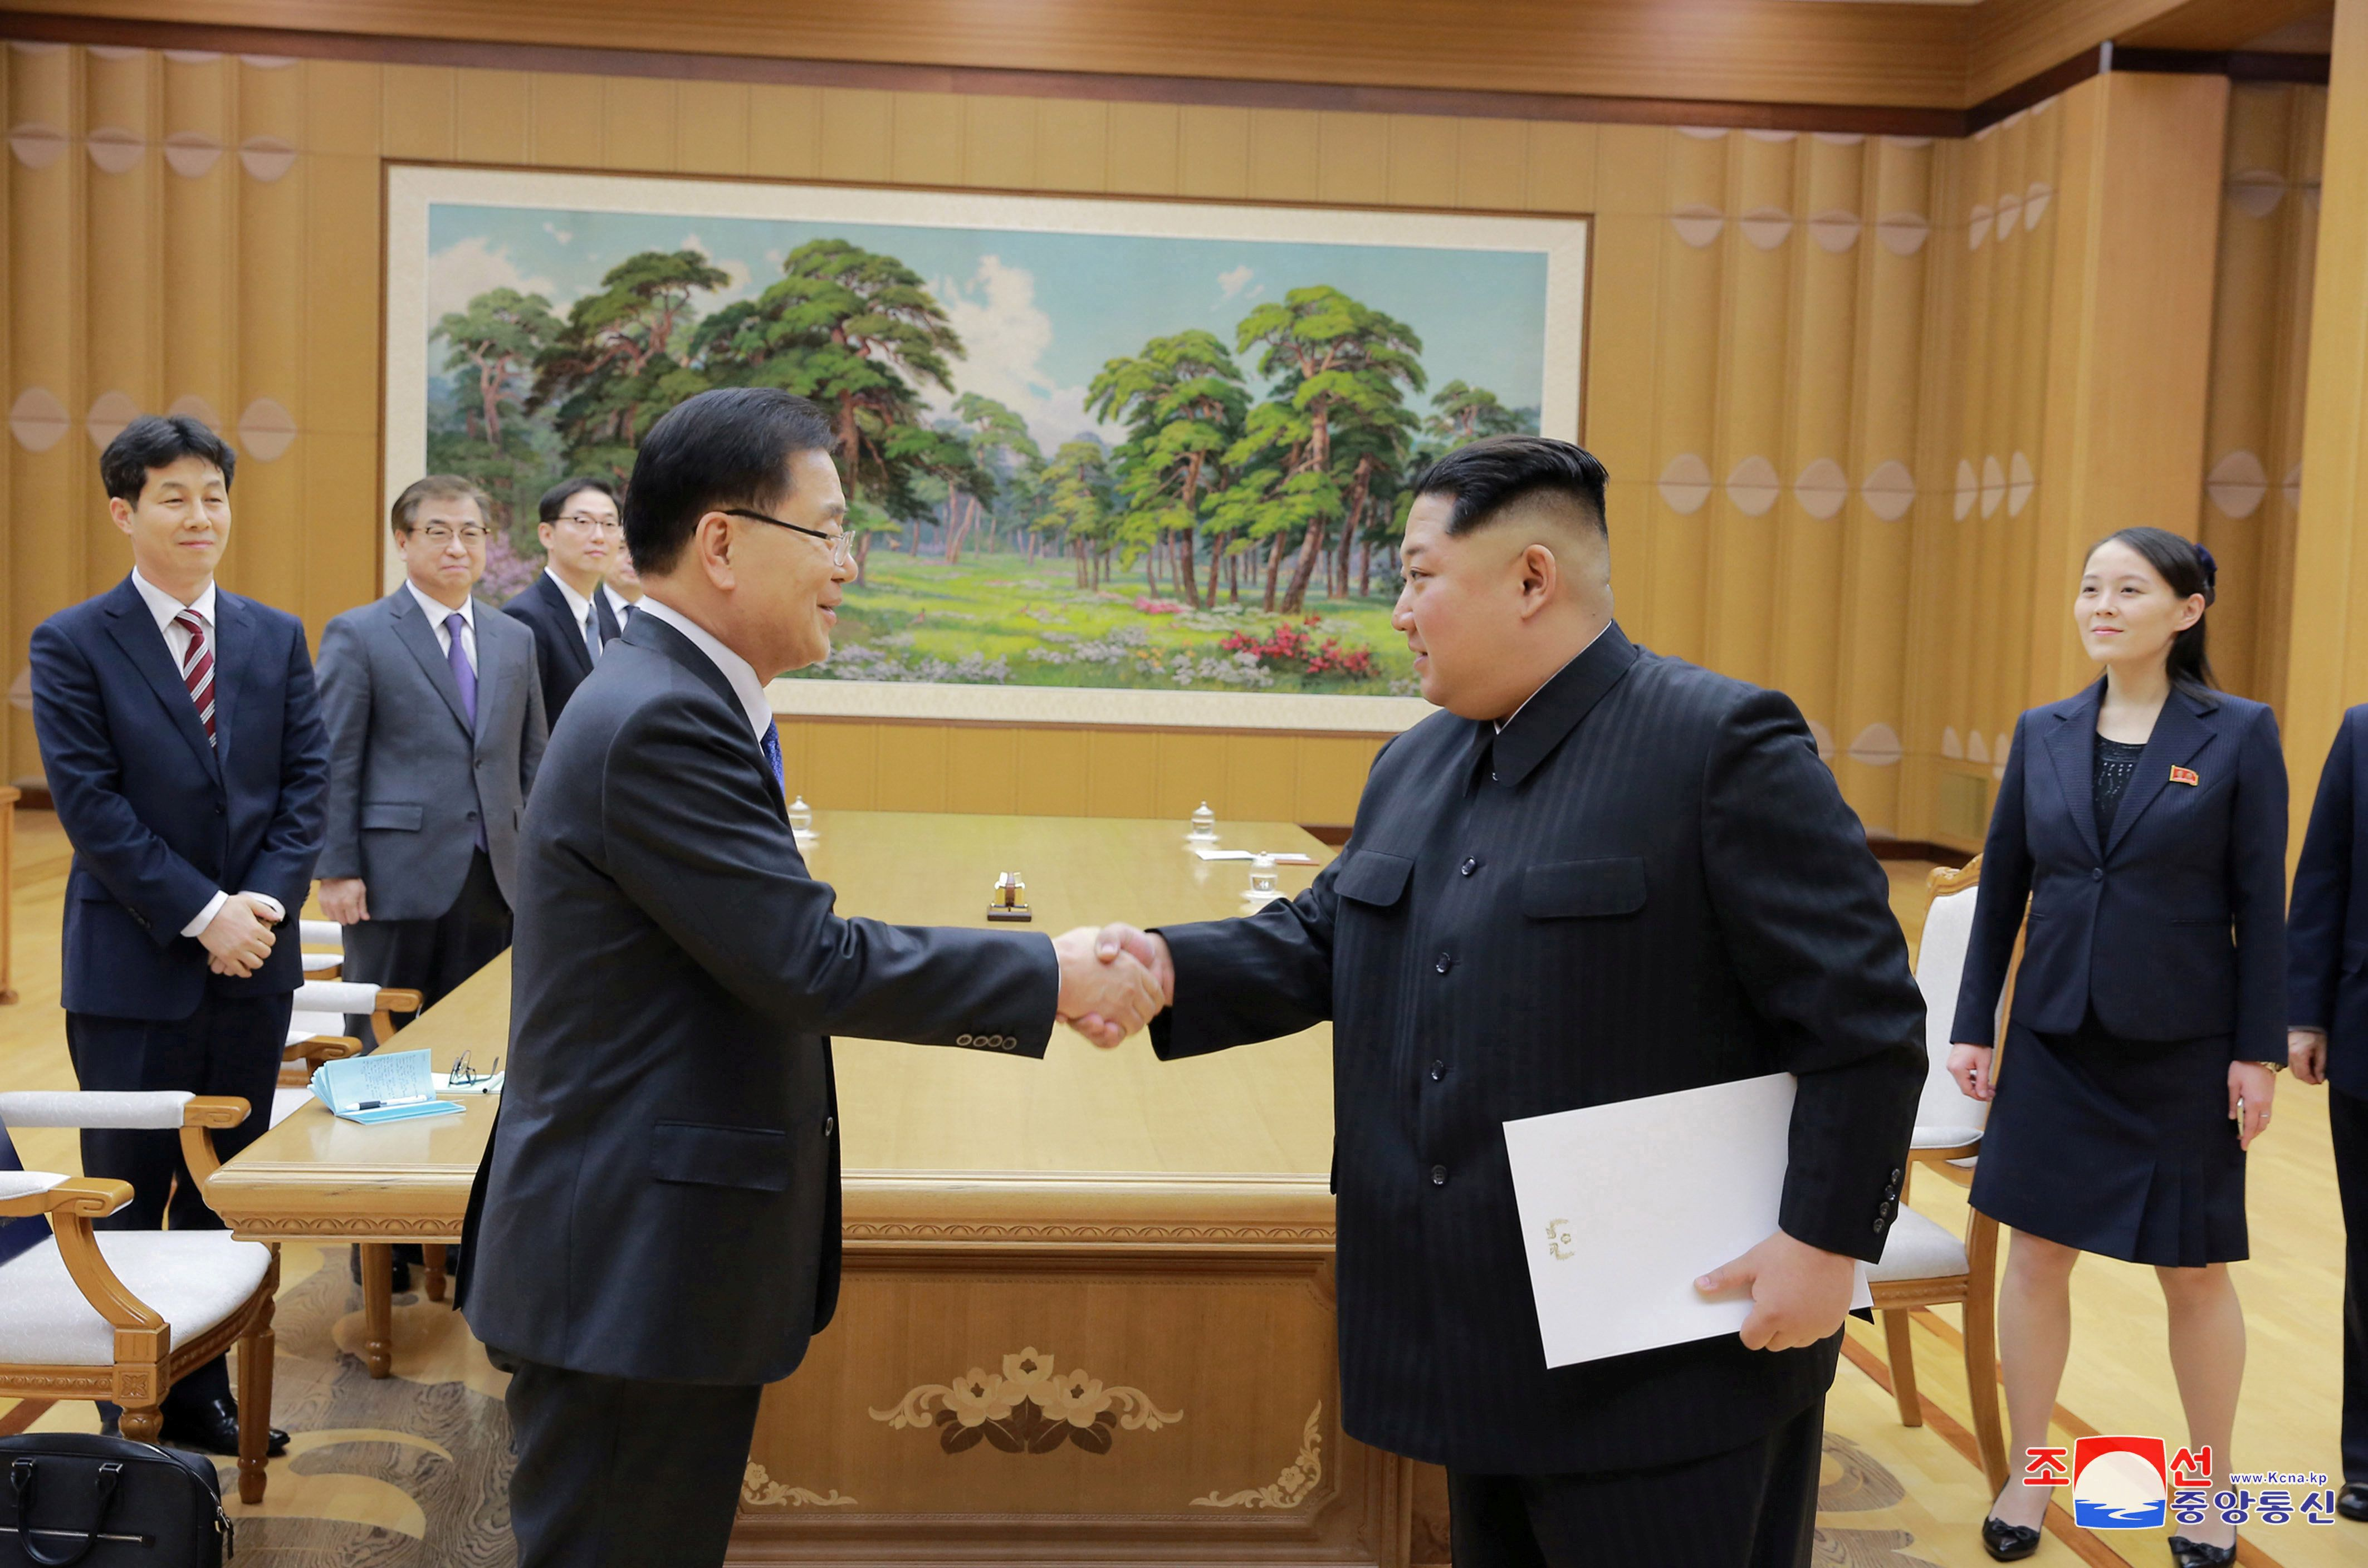 North Korean leader Kim Jong Un shakes hands with Chung Eui-yong who is leading a special delegation of South Korea's President, in this photo released by North Korea's Korean Central News Agency (KCNA) on March 6, 2018. KCNA/via Reuters   ATTENTION EDITORS - THIS PICTURE WAS PROVIDED BY A THIRD PARTY. REUTERS IS UNABLE TO INDEPENDENTLY VERIFY THE AUTHENTICITY, CONTENT, LOCATION OR DATE OF THIS IMAGE. NO THIRD PARTY SALES. SOUTH KOREA OUT.     TPX IMAGES OF THE DAY